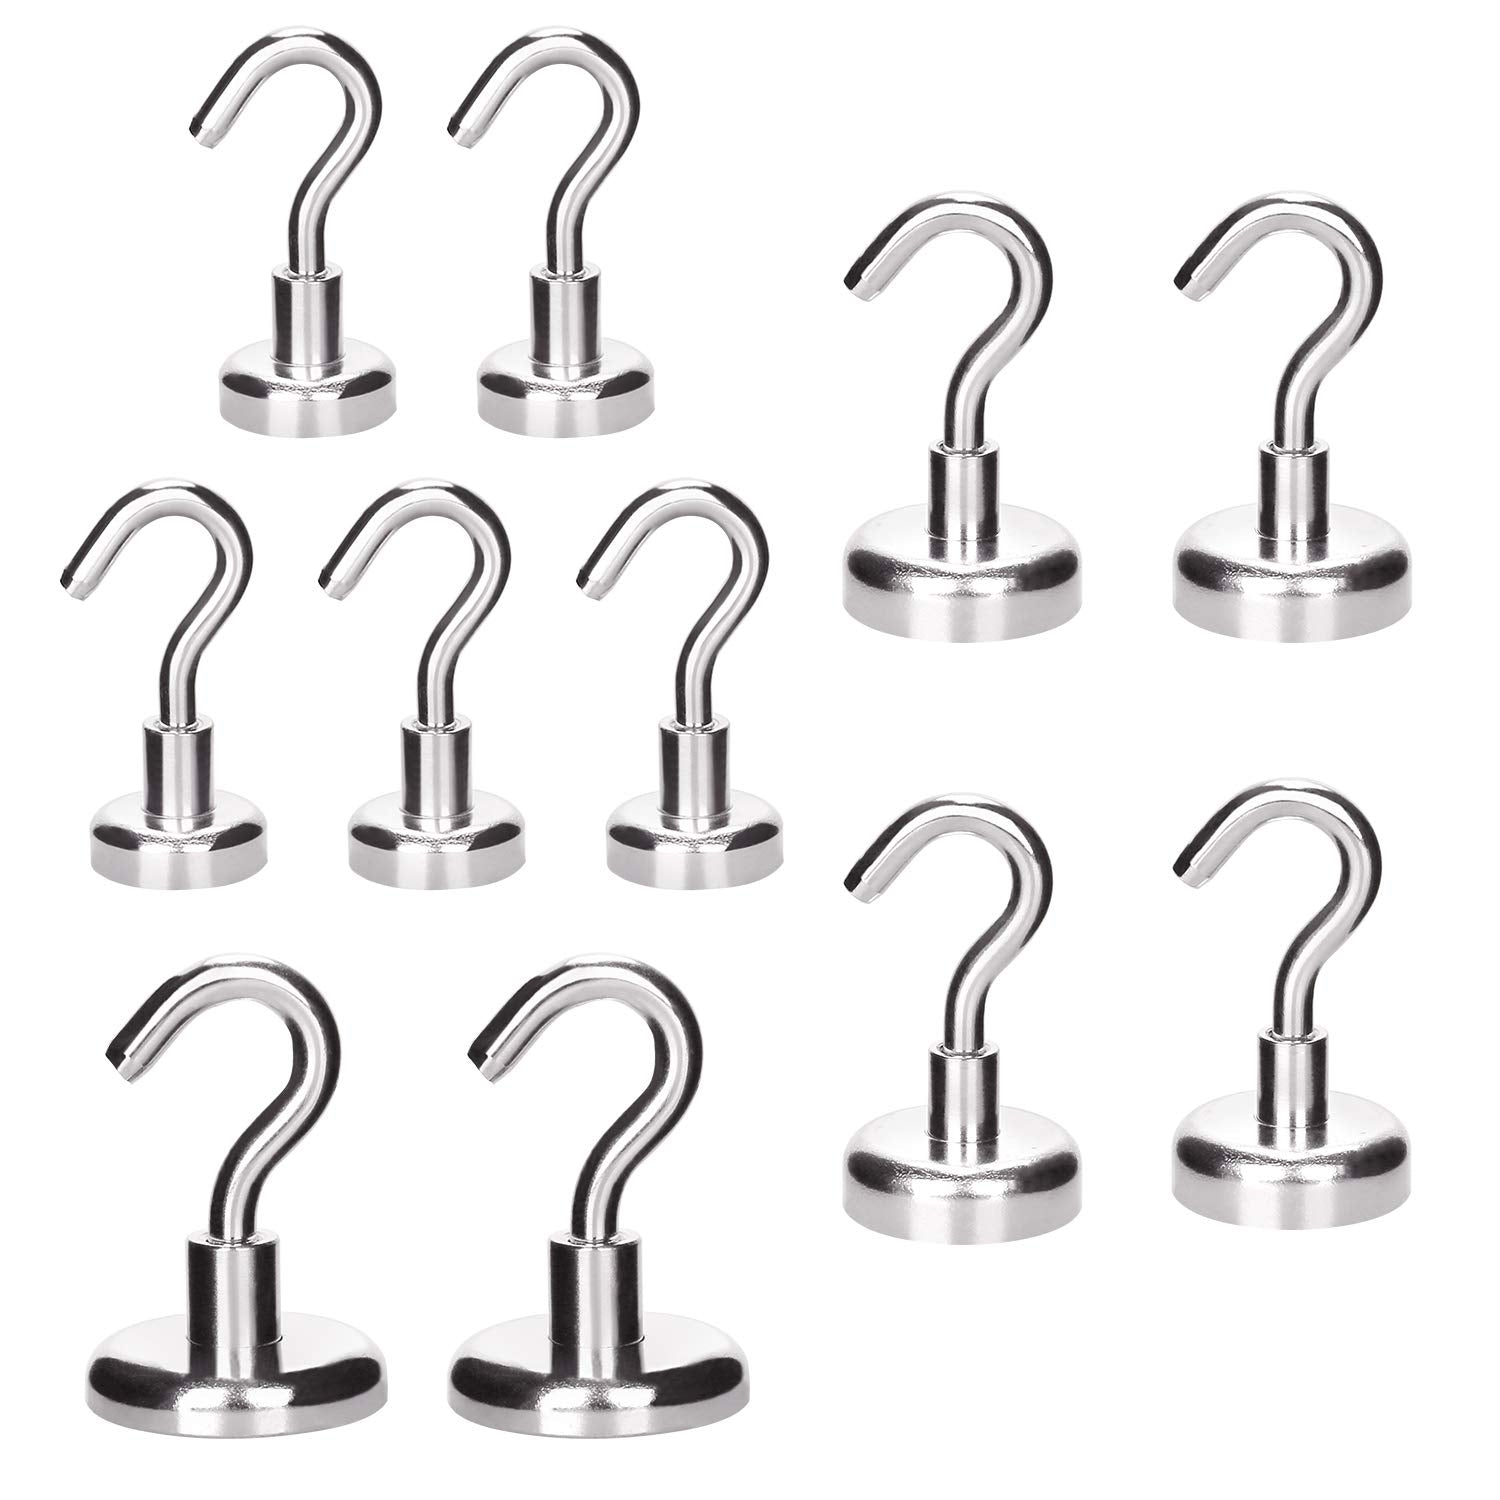 RONRI Magnetic Hooks, Powerful Heavy Duty Neodymium 18LB Magnet Hook for Refrigerator, Kitchen, Officce and Garage with Strong Corrosion Protection, 8PACK